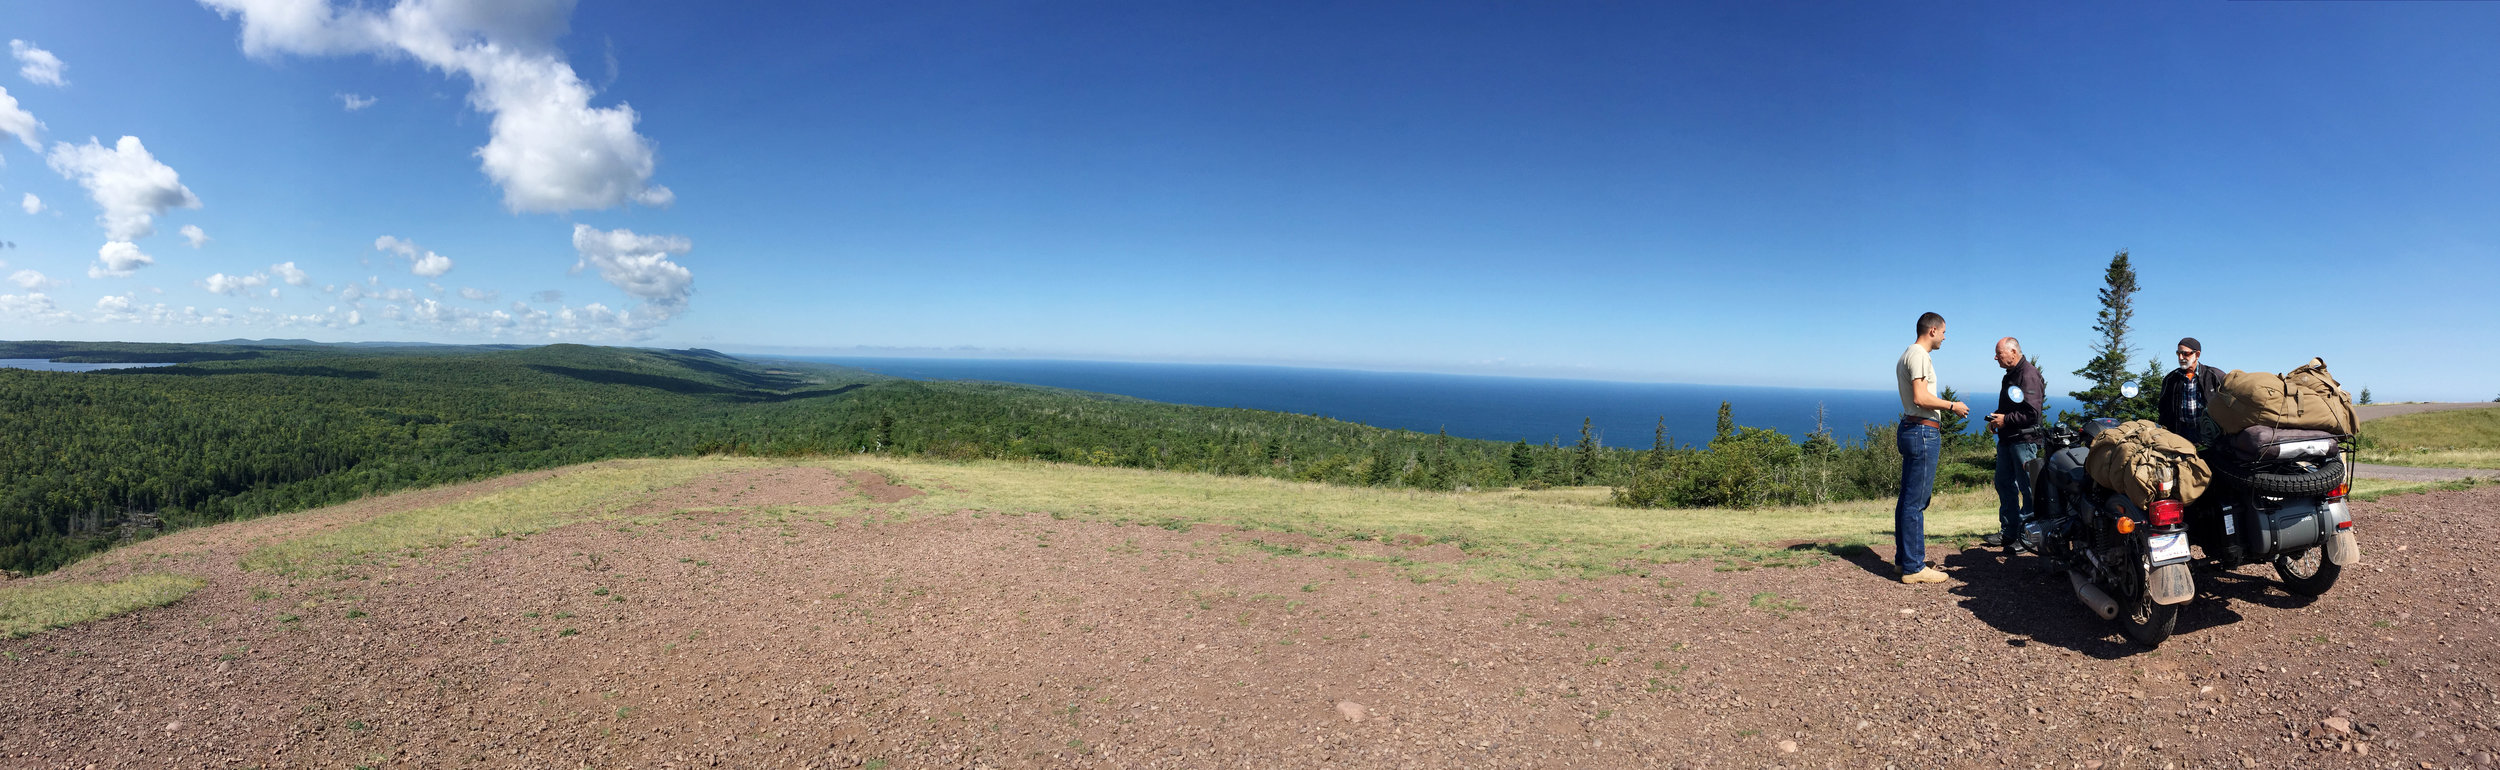 Overlooking Lake Superior in Copper Harbor, MI - Chatting with a few other bikers